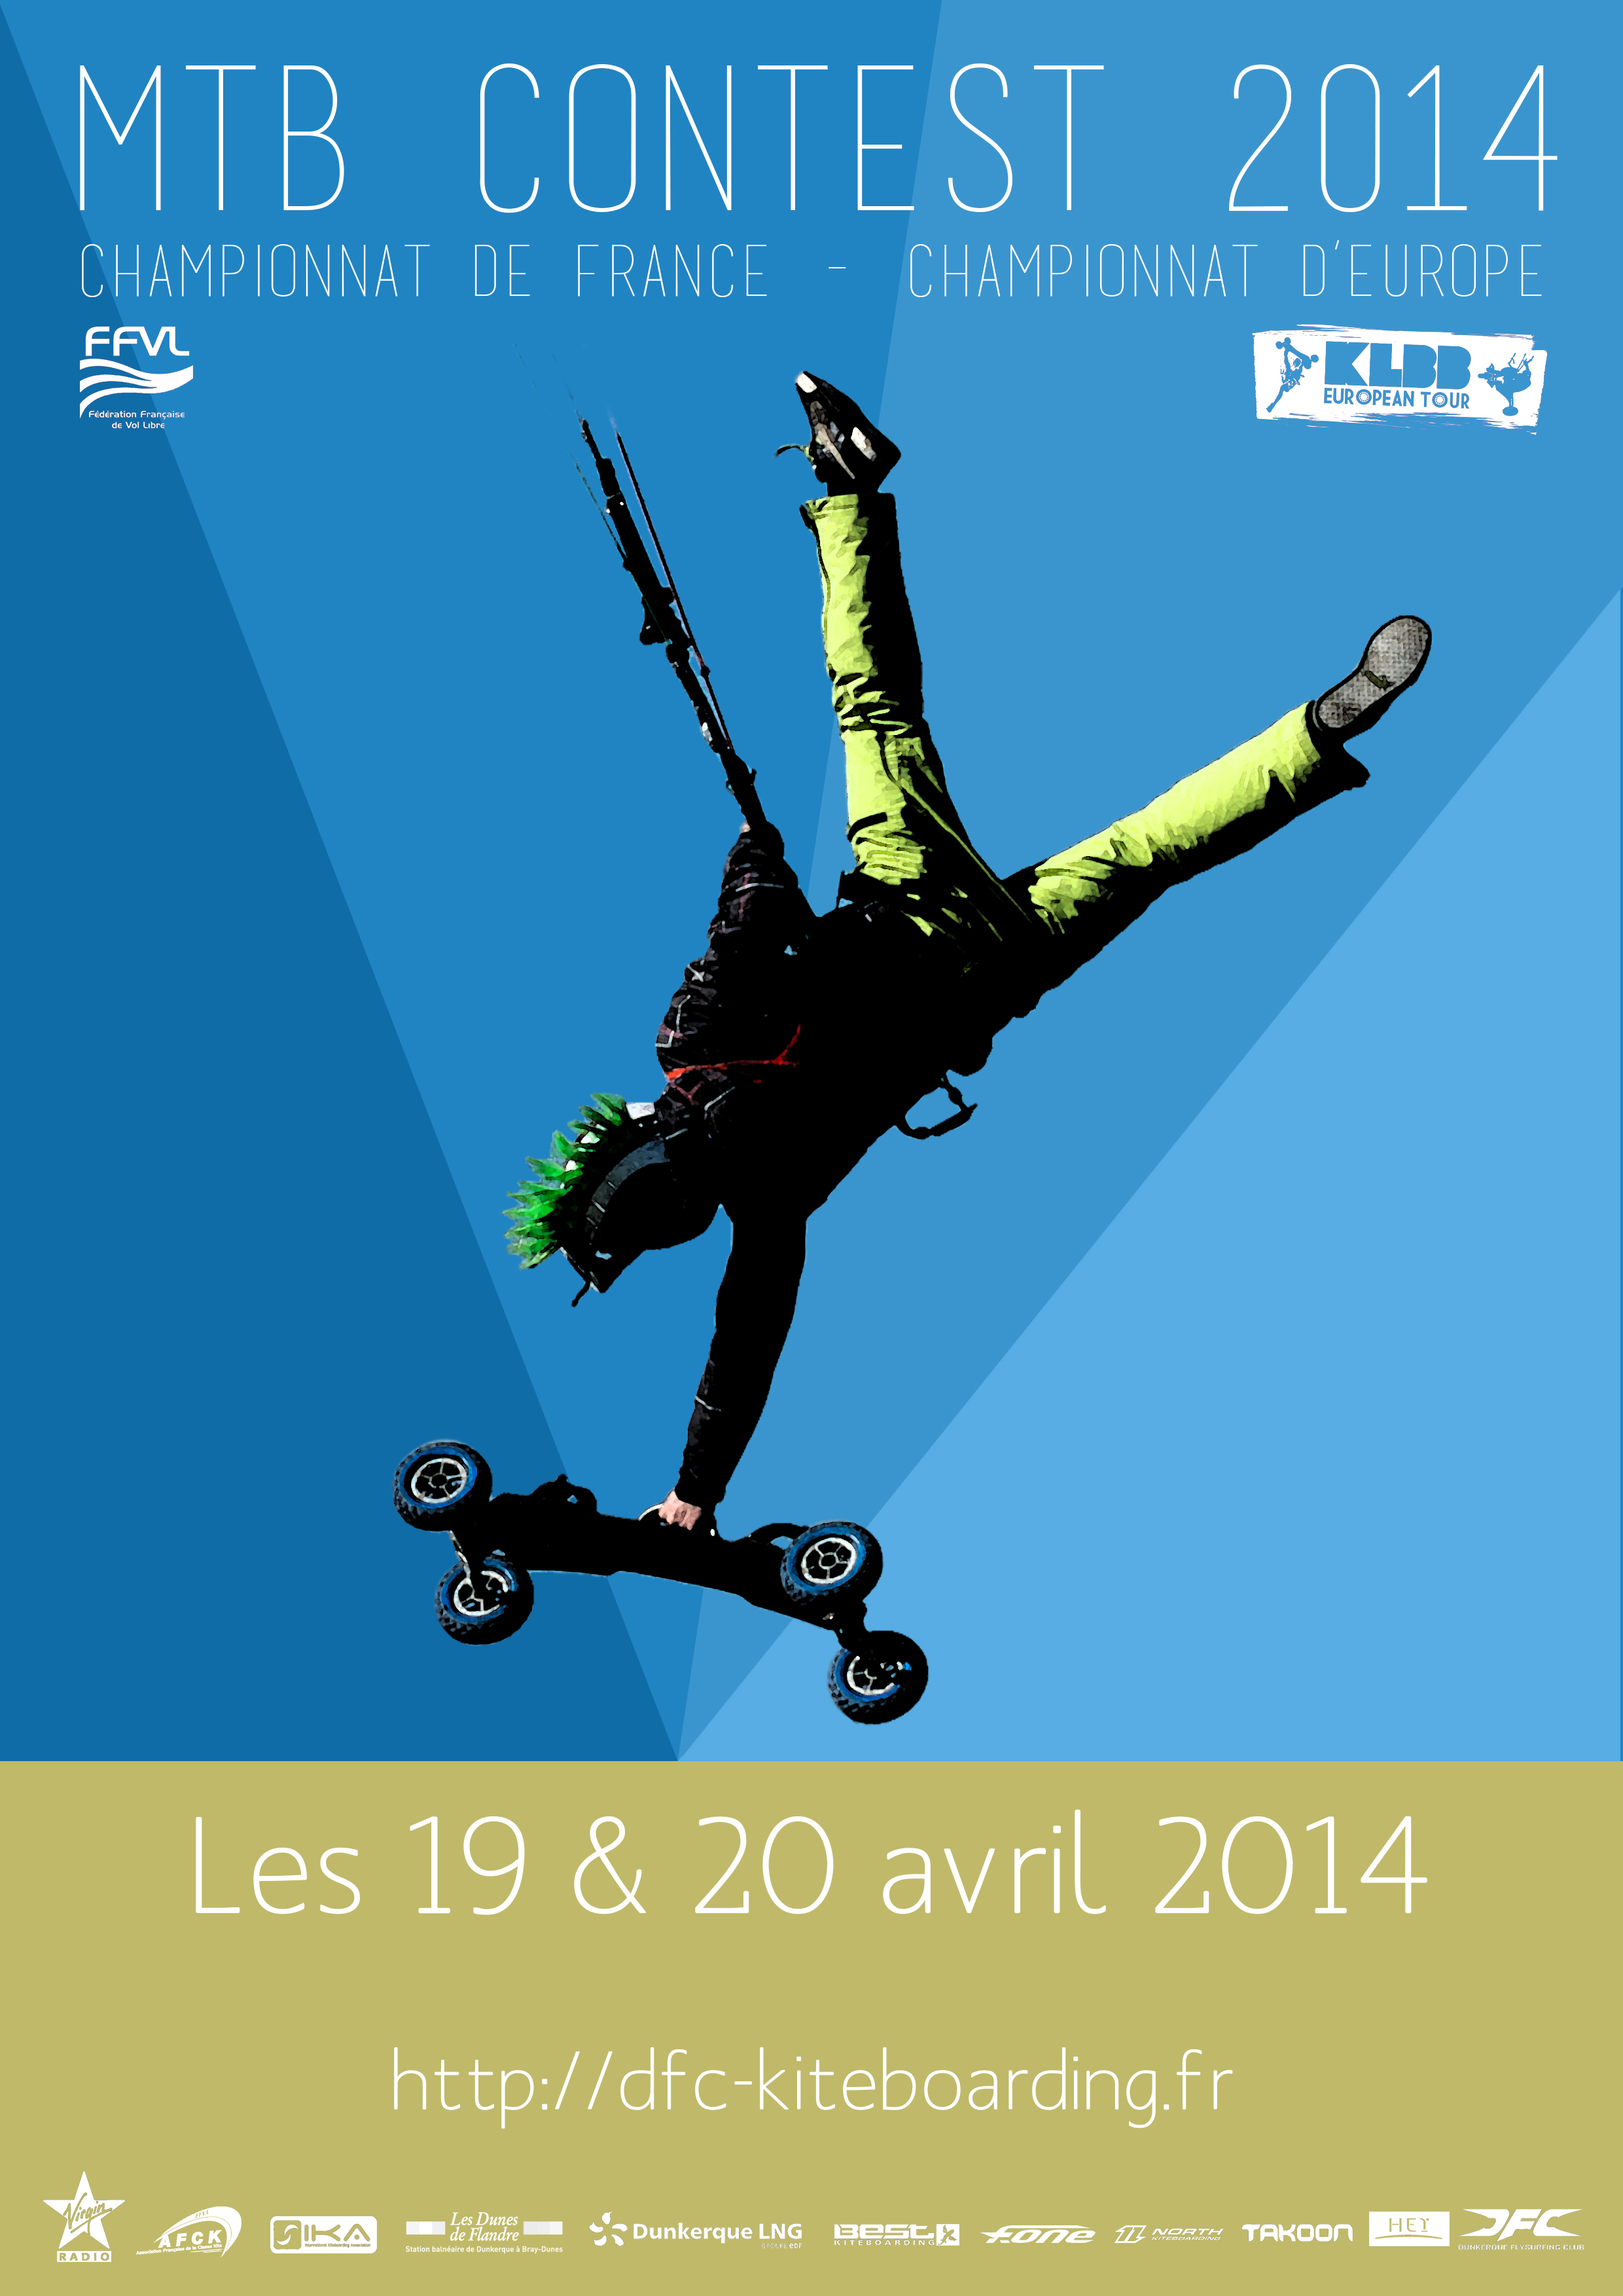 Championnats de france et d'Europe de mountainboard